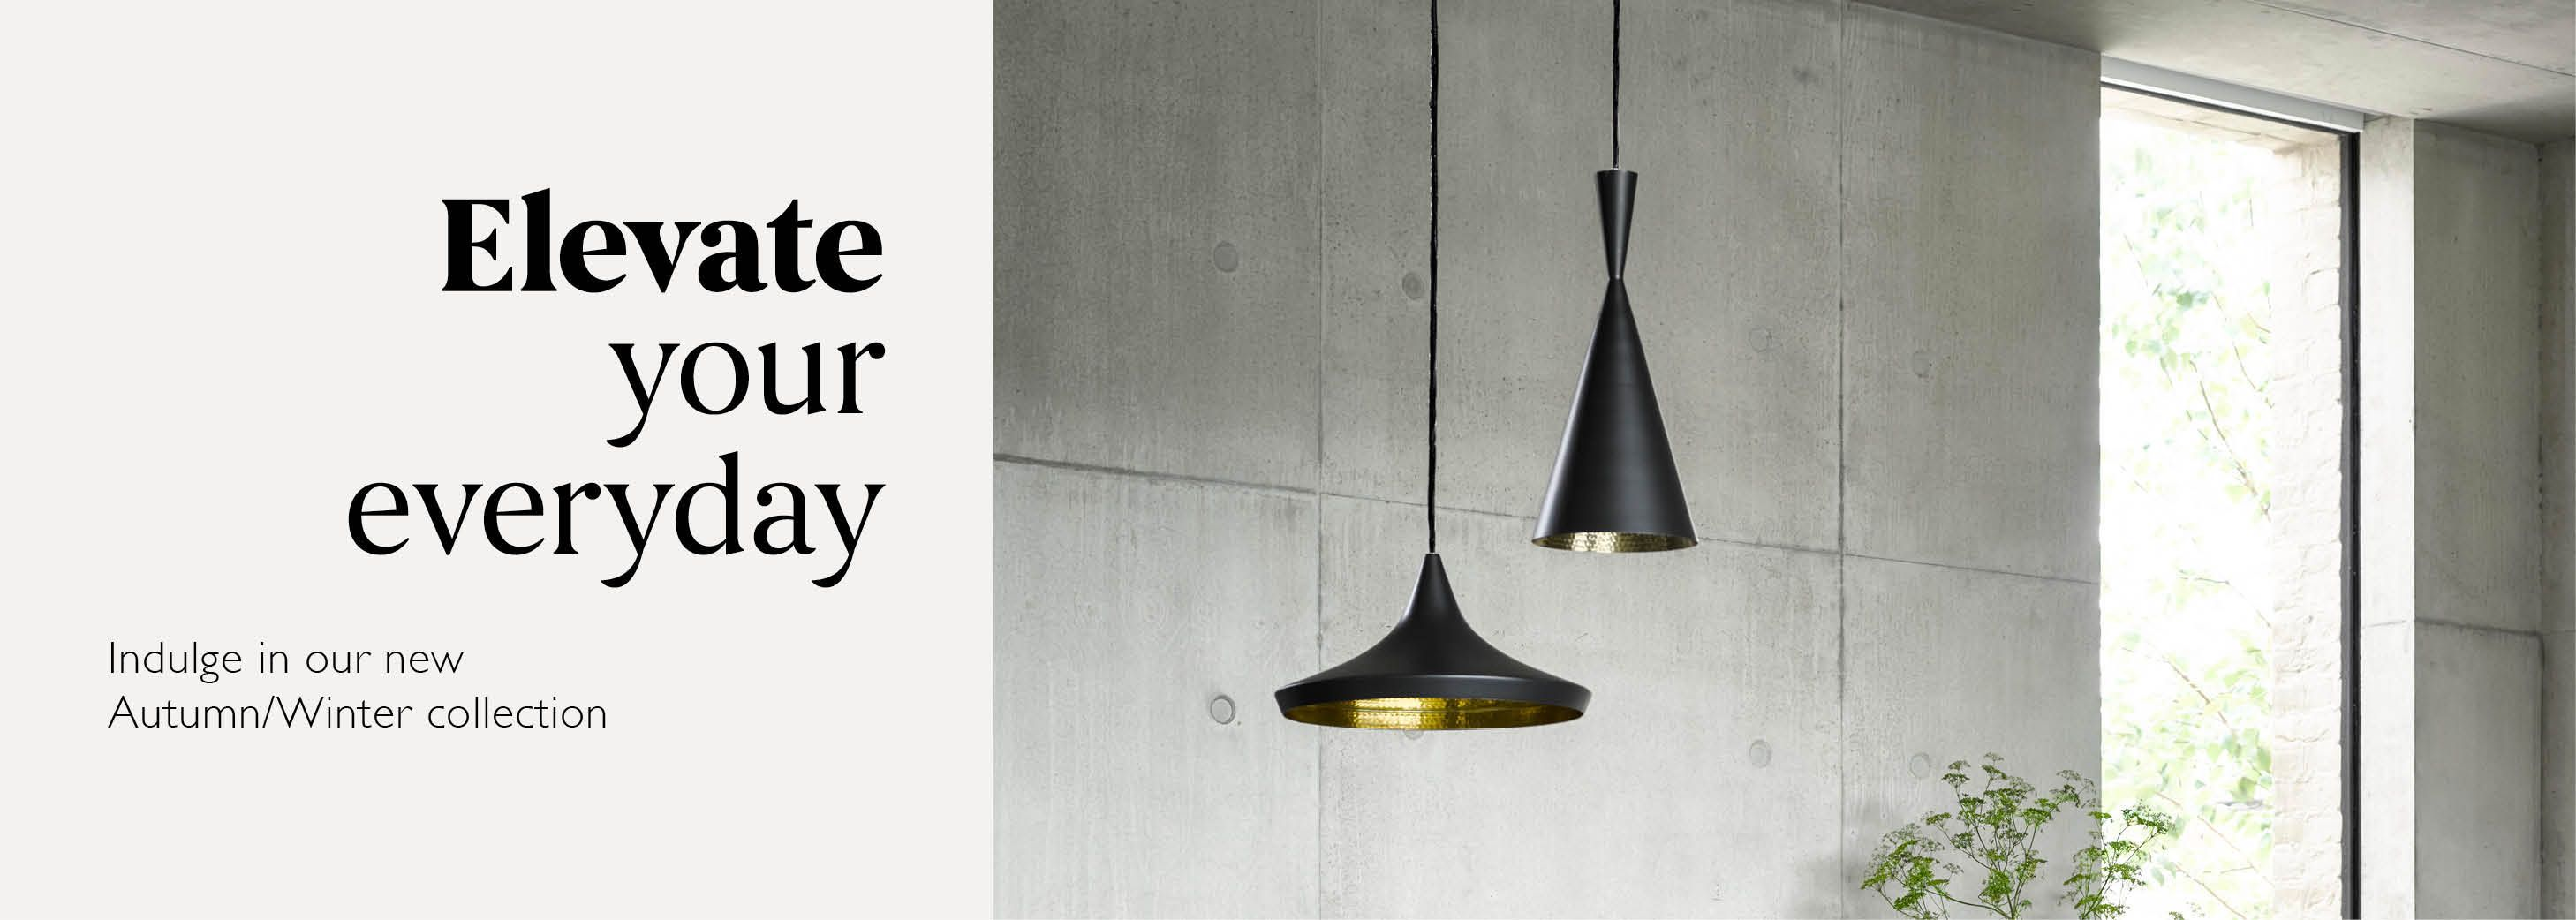 Elevate your everyday - Shop Lighting